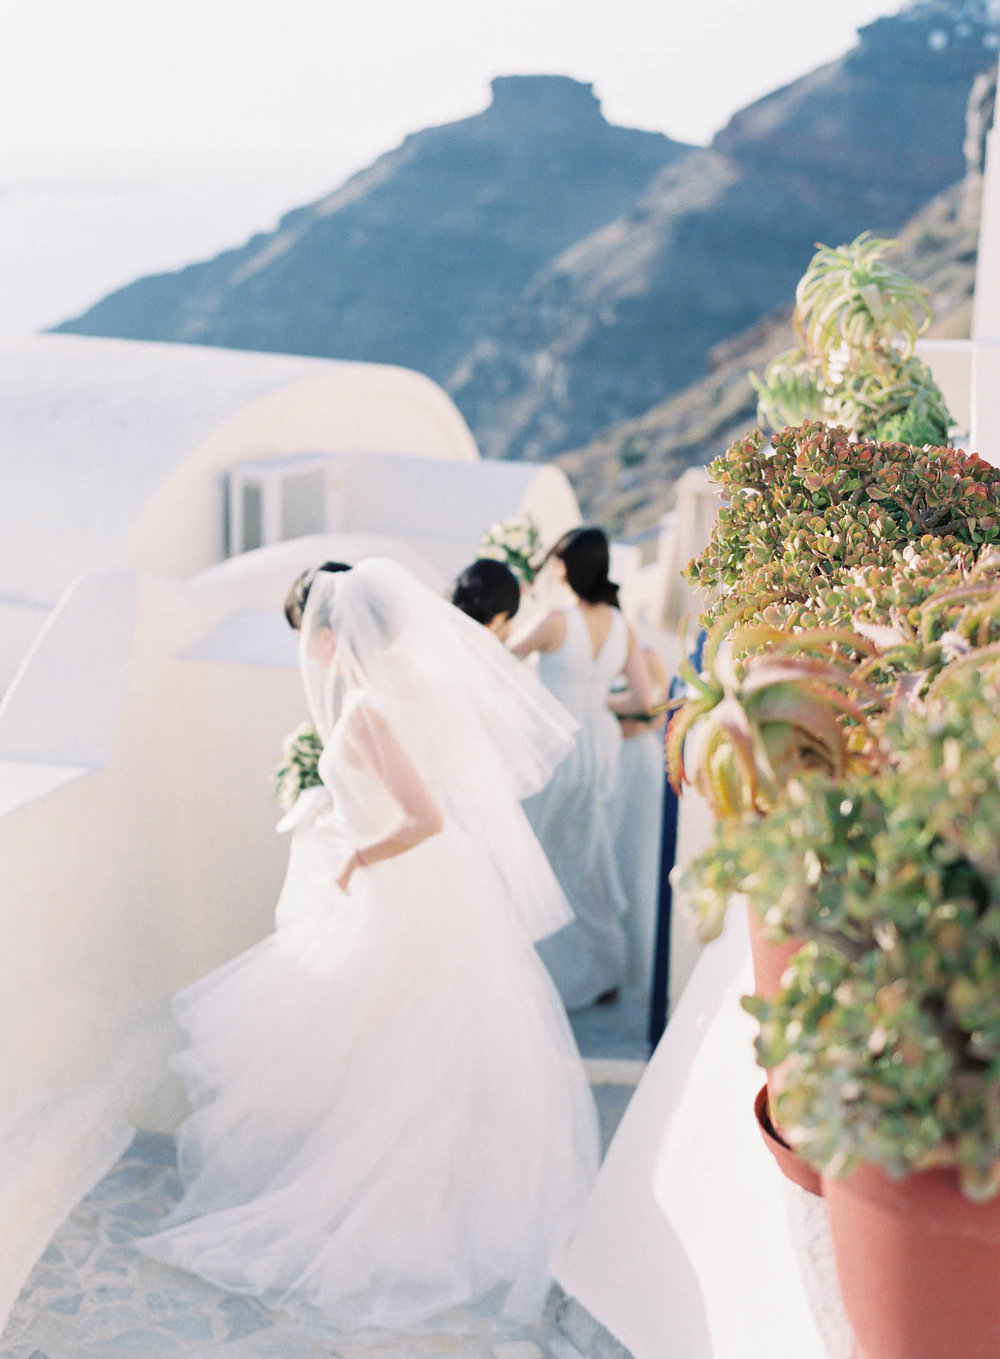 santorini-chinese-wedding-jen-huang-13.jpg